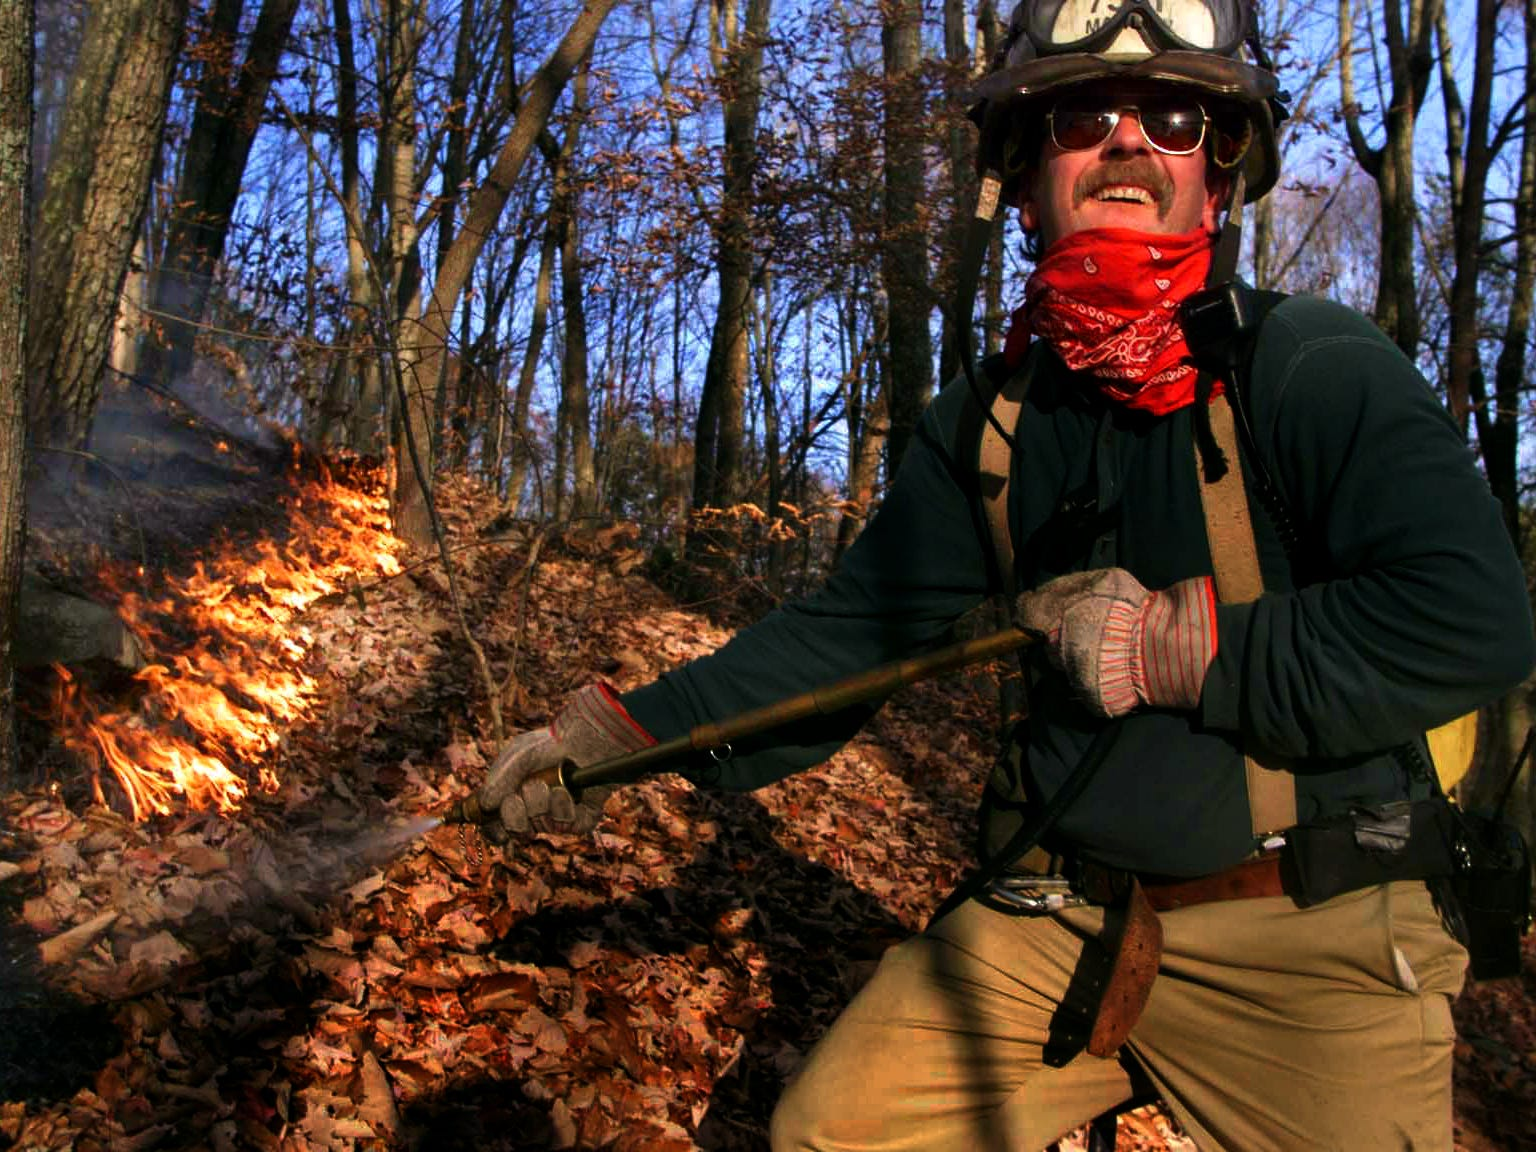 Marlow fire Dept. Ast. Chief Win Matheny talks to his partner as he sprays water on the fire line on the hill about 200-yards behind Tamya West's home on Dutch Valley Rd just outside Oliver Springs. West and her father, Johnny Wilson said the fire has burned on and off for two weeks on the ridge behind them. 11/16/1999.